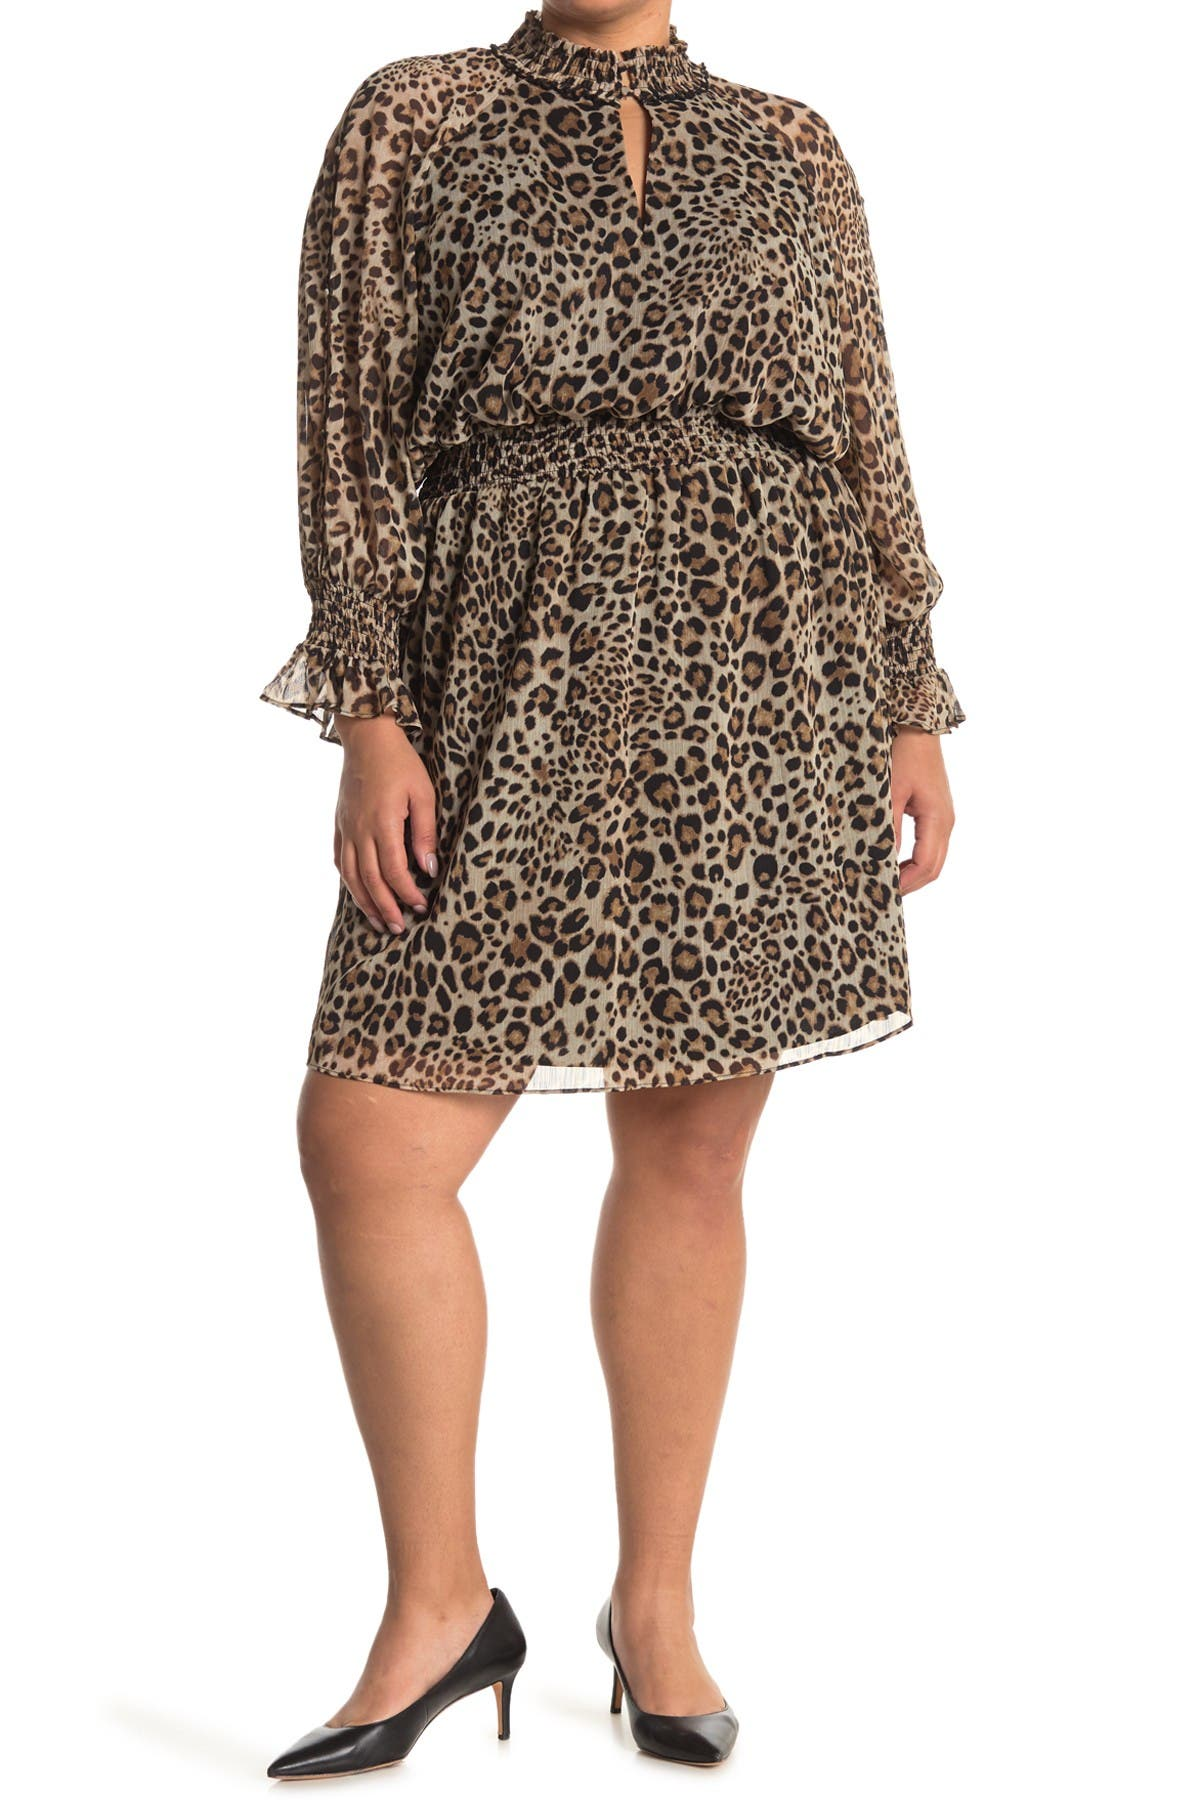 Image of Rachel Roy Lucky Leopard Print Dress